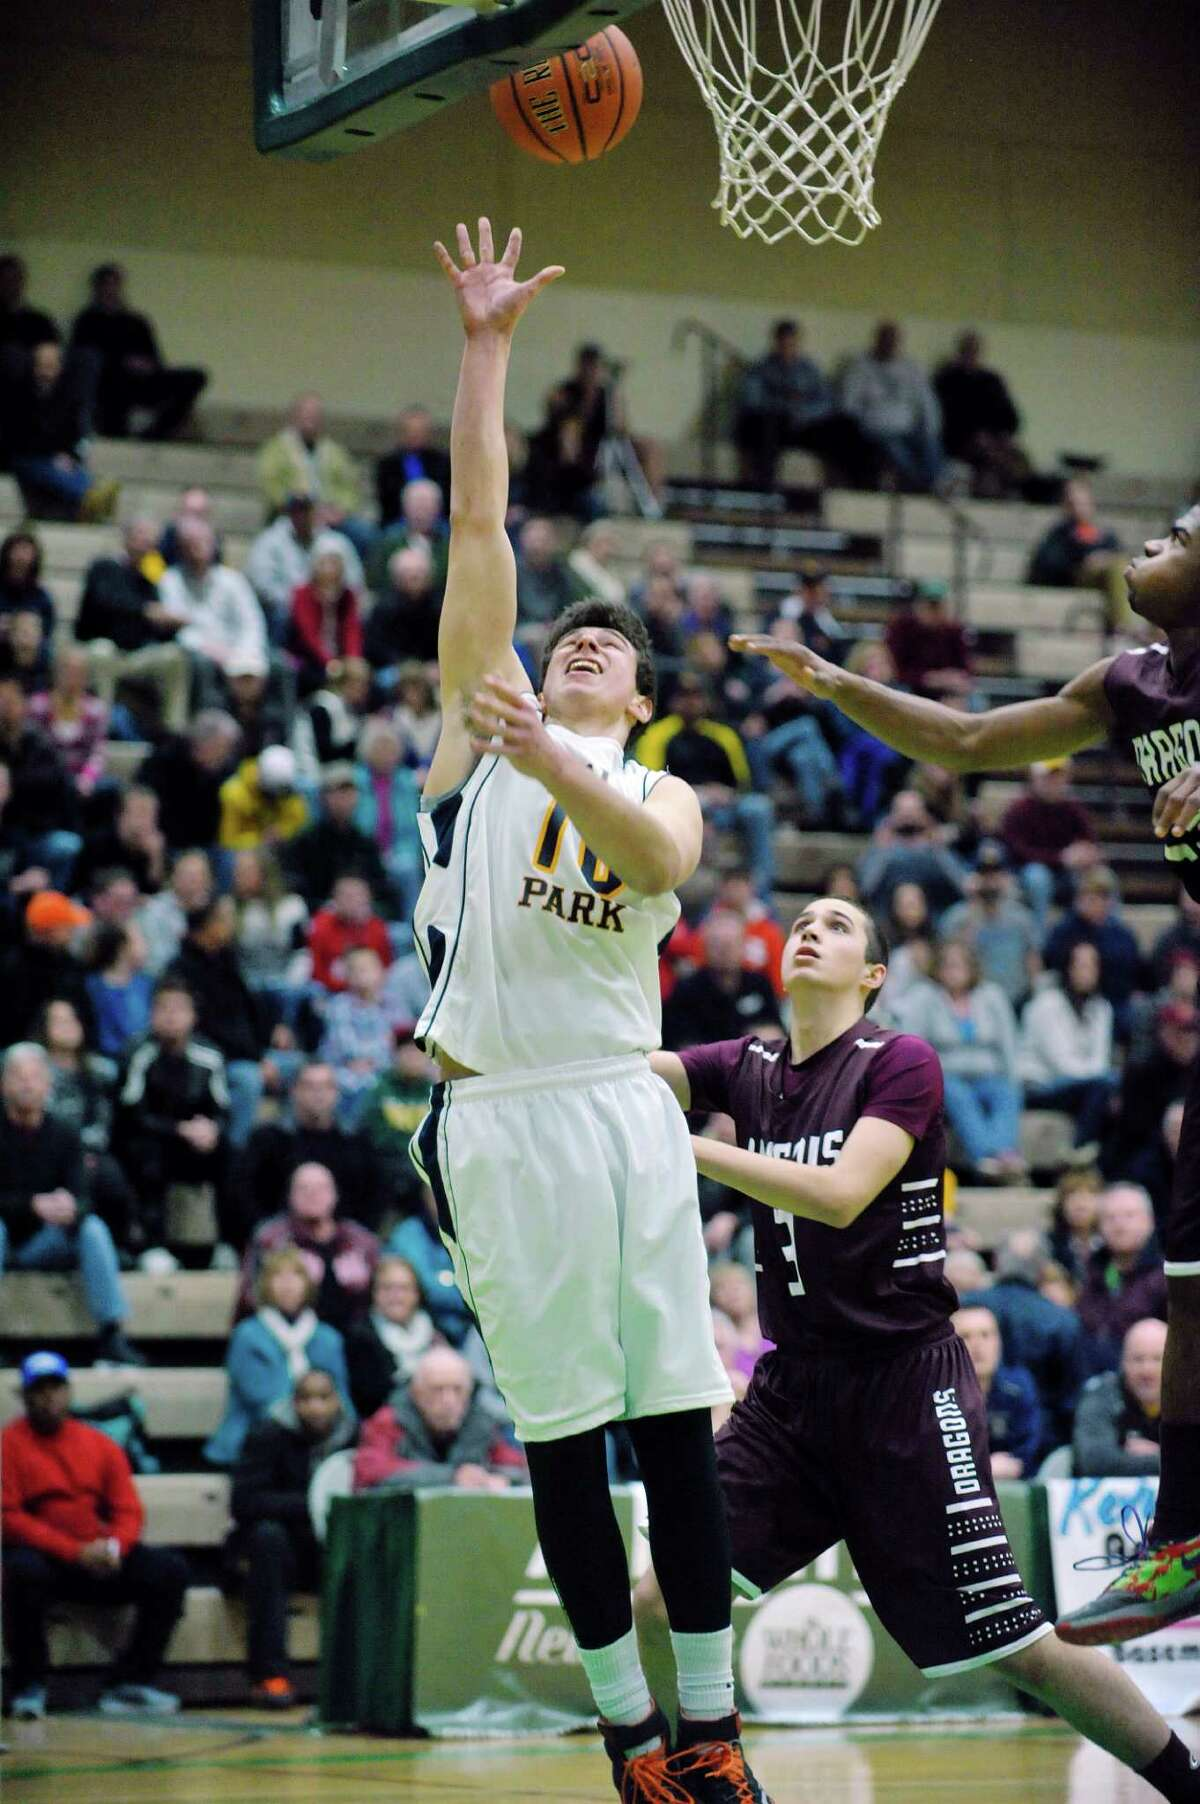 Ryan Bielawa of Averill Park puts up a shot between Gloversville players during their Class A quarterfinal game at Hudson Valley Community College on Sunday, March 1, 2015, in Troy, N.Y. (Paul Buckowski / Times Union)